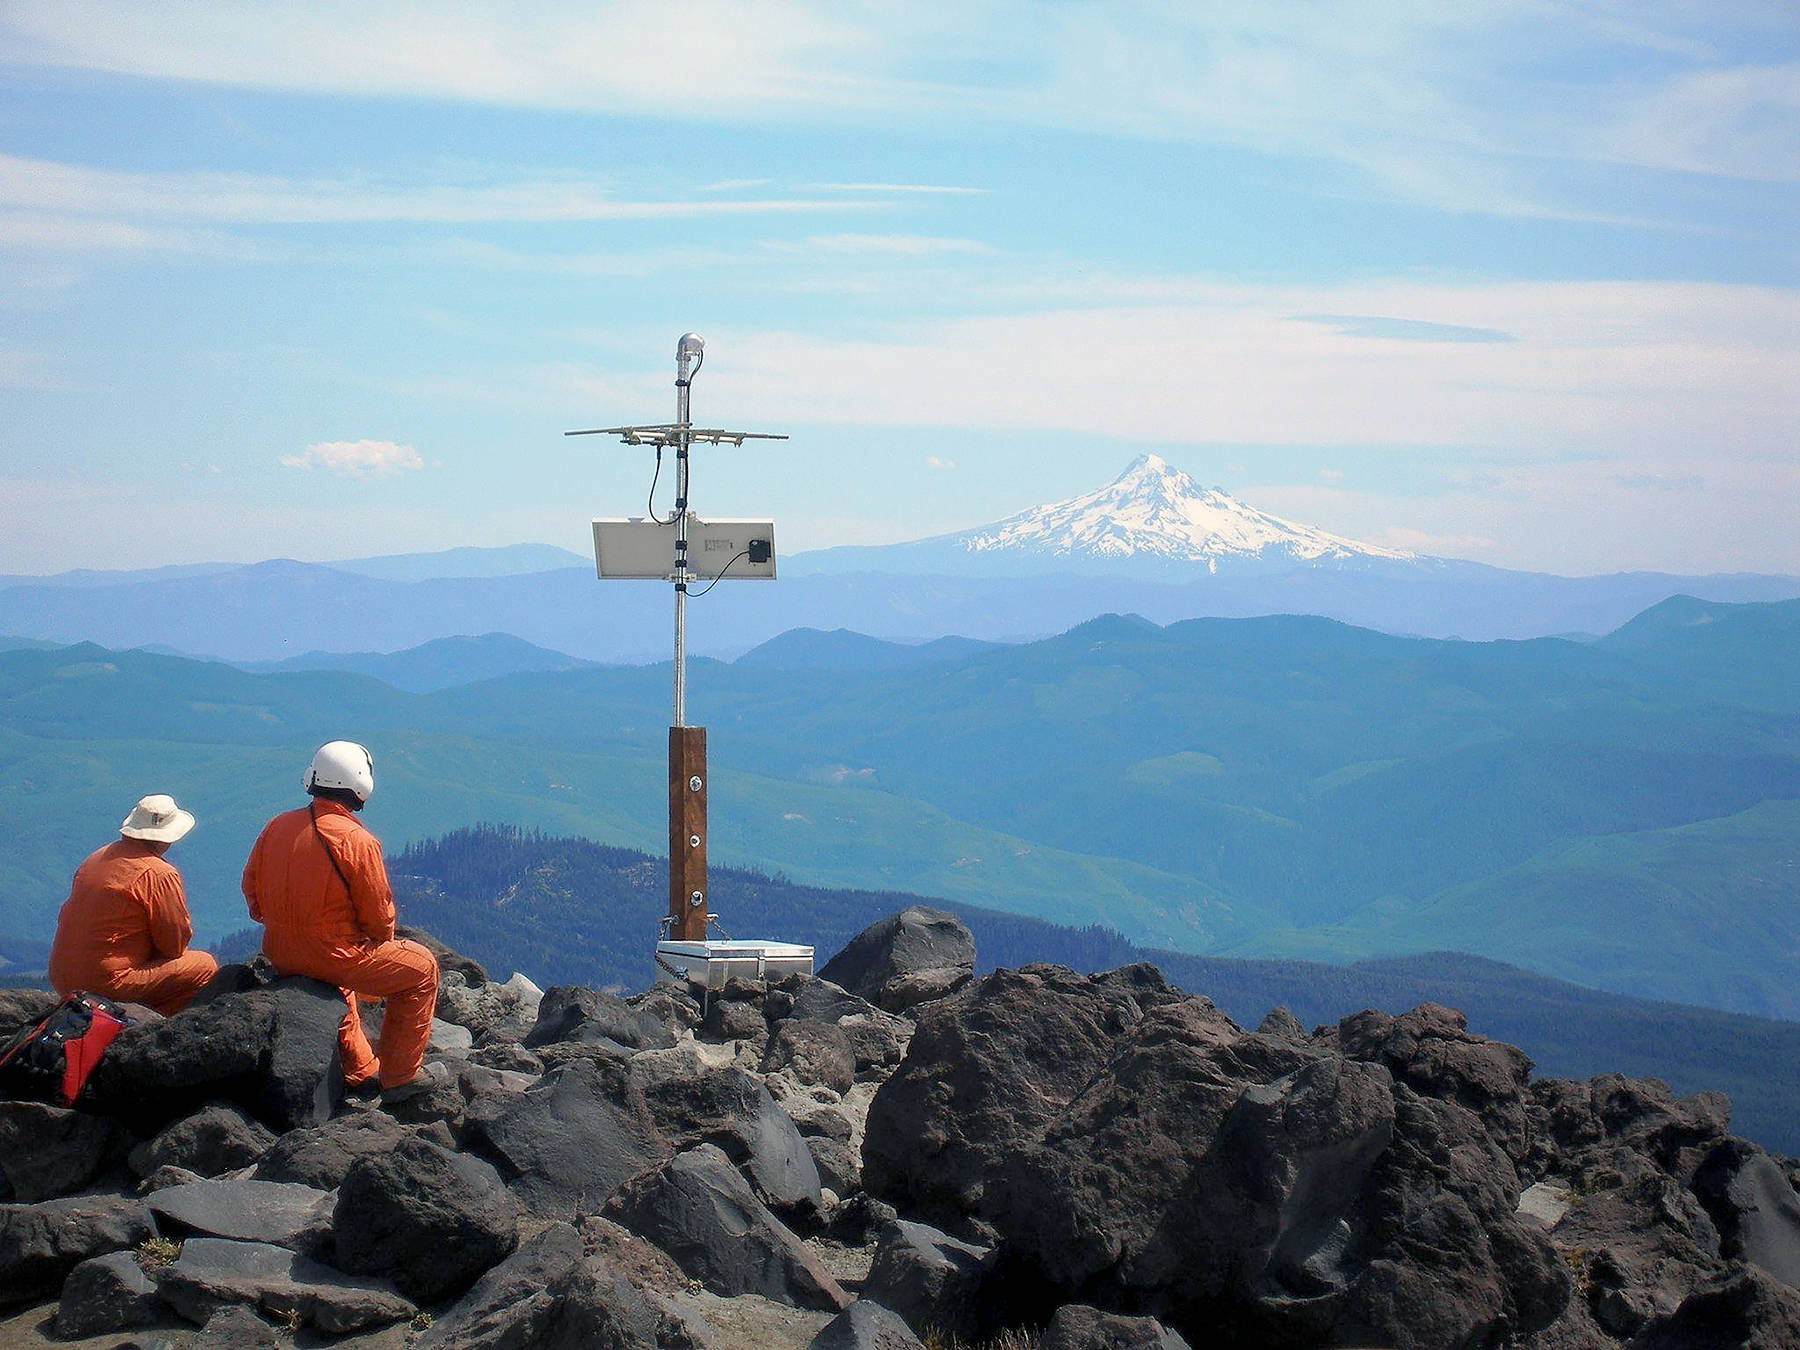 Karl Hagel and Pat McChesney, field engineers with the Pacific Northwest Seismic Network team at the University of Washington, install earthquake monitoring equipment on the slopes of Mount St. Helens, with Mount Hood in the distance. (Marc Biundo / University of Washington)